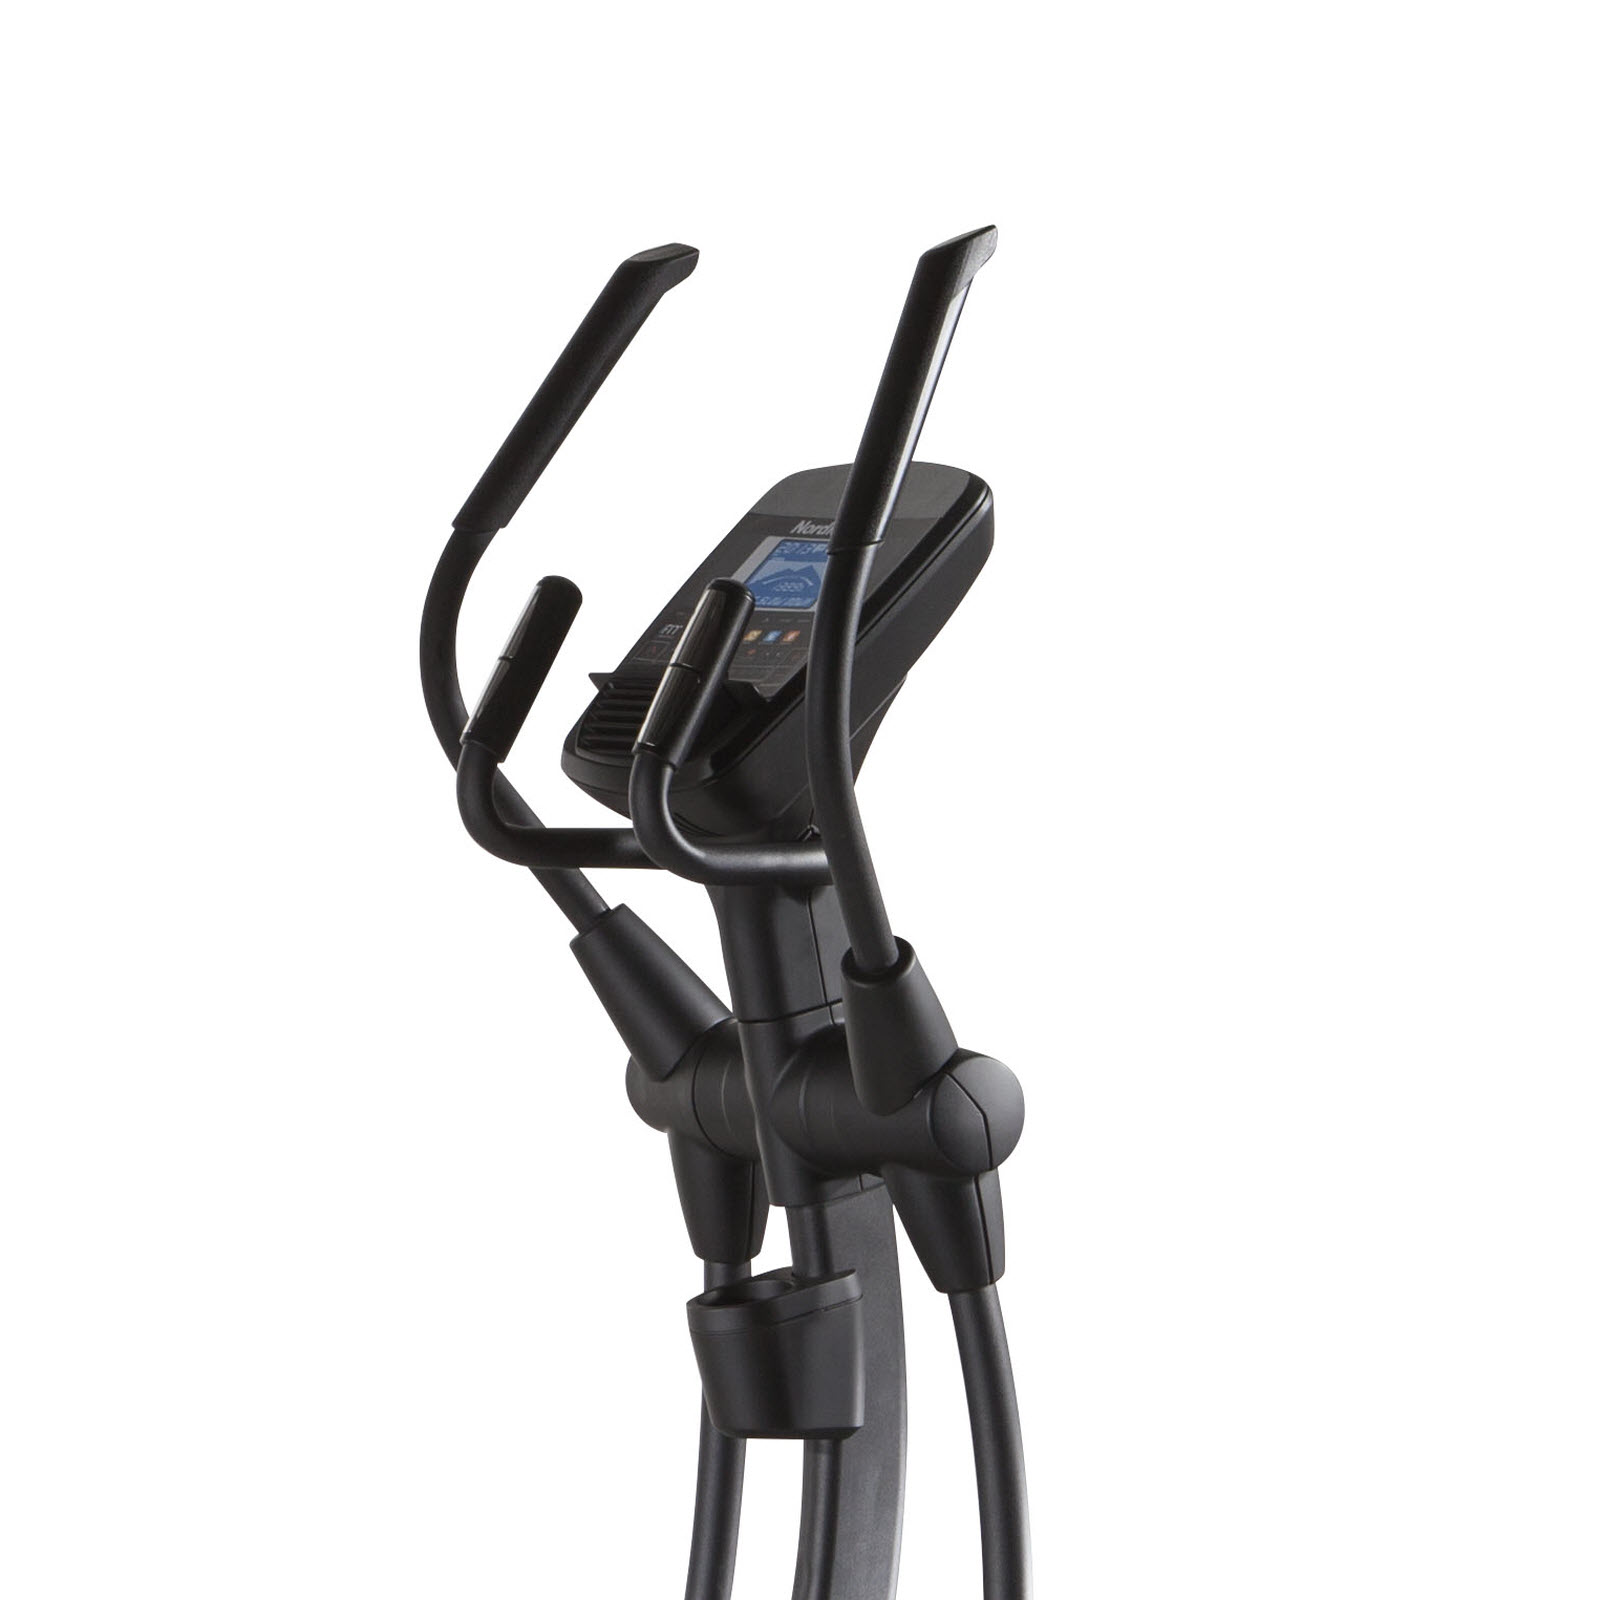 NordicTrack E 7.7 Elliptical